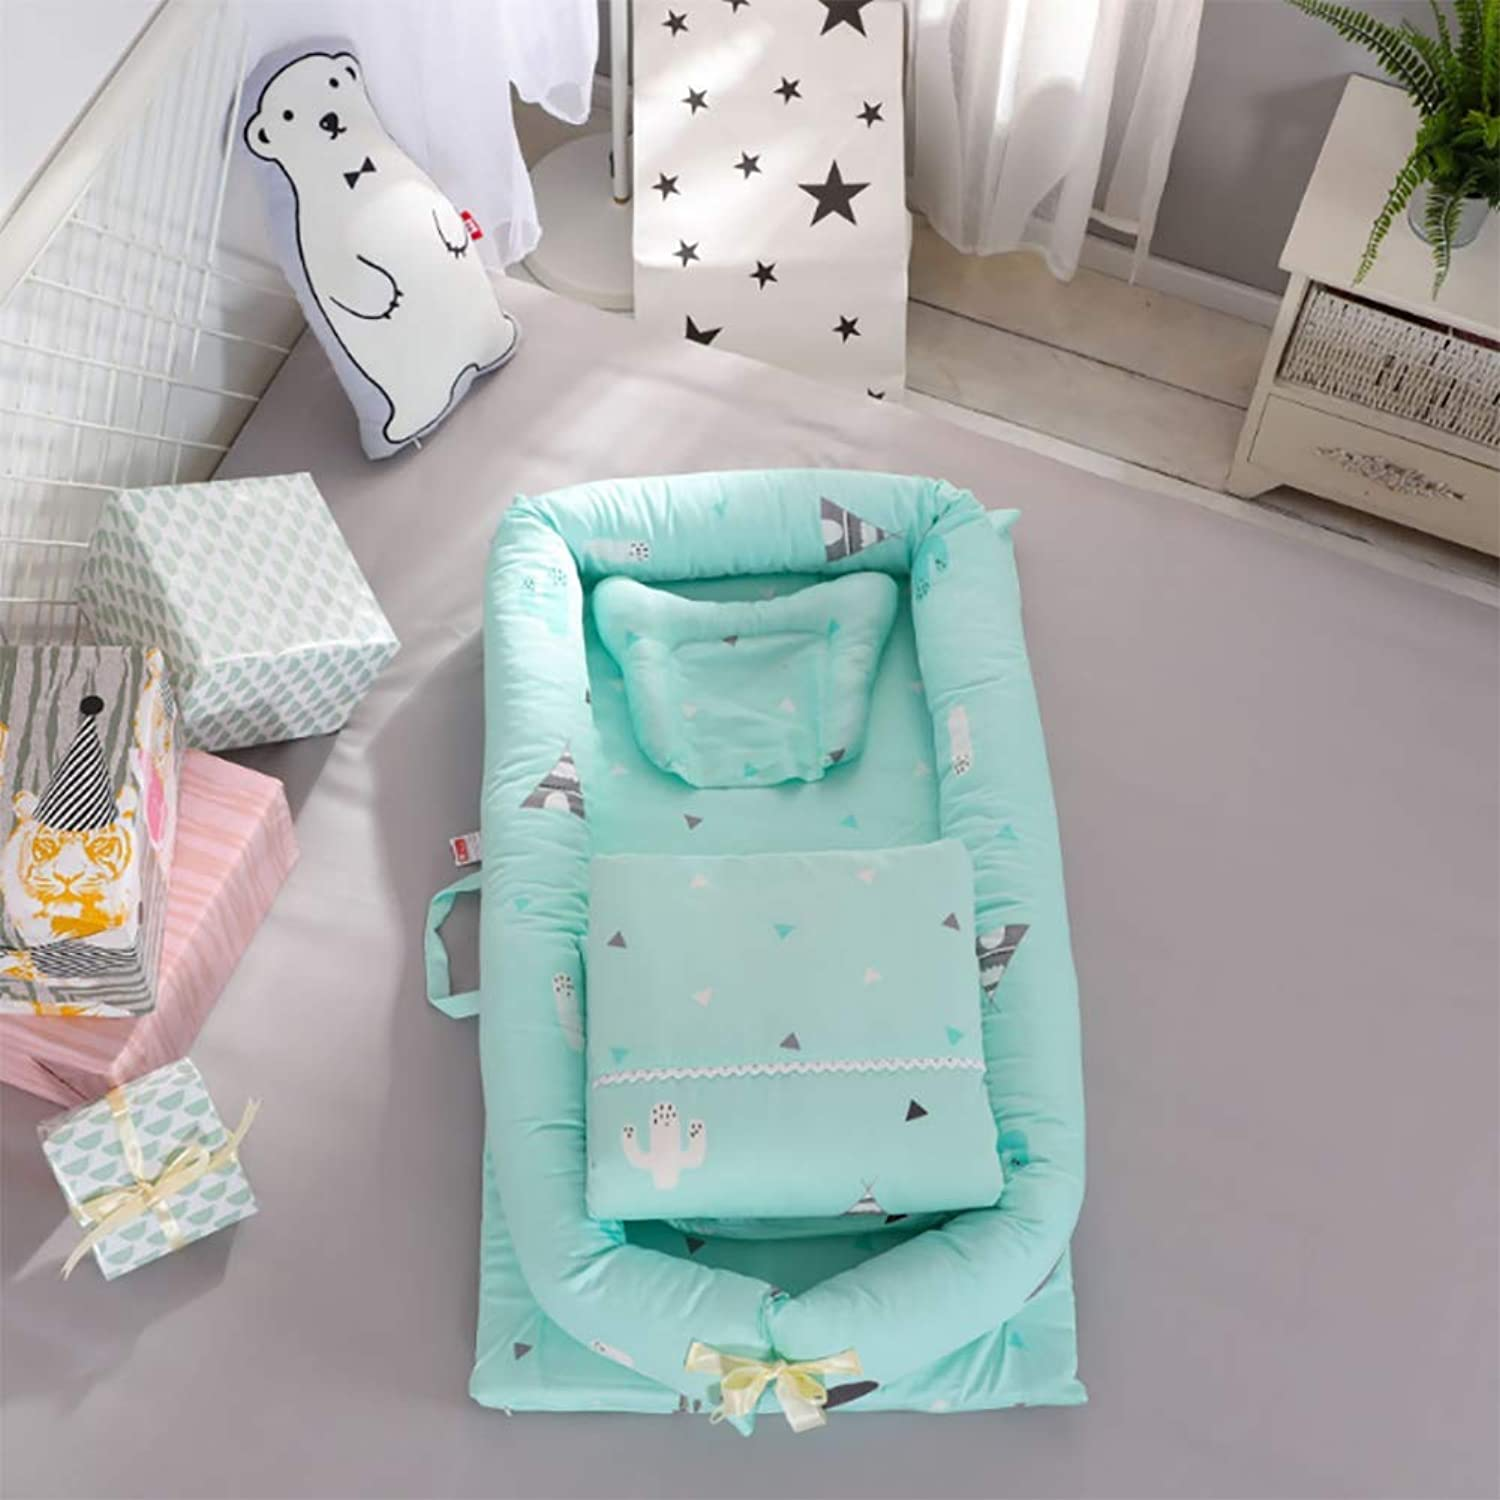 Crib Cotton Multi-Function Folding Portable Travel Baby Bionic Crib Suitable for Age 0-24 Months Baby (Removable Quilt),L